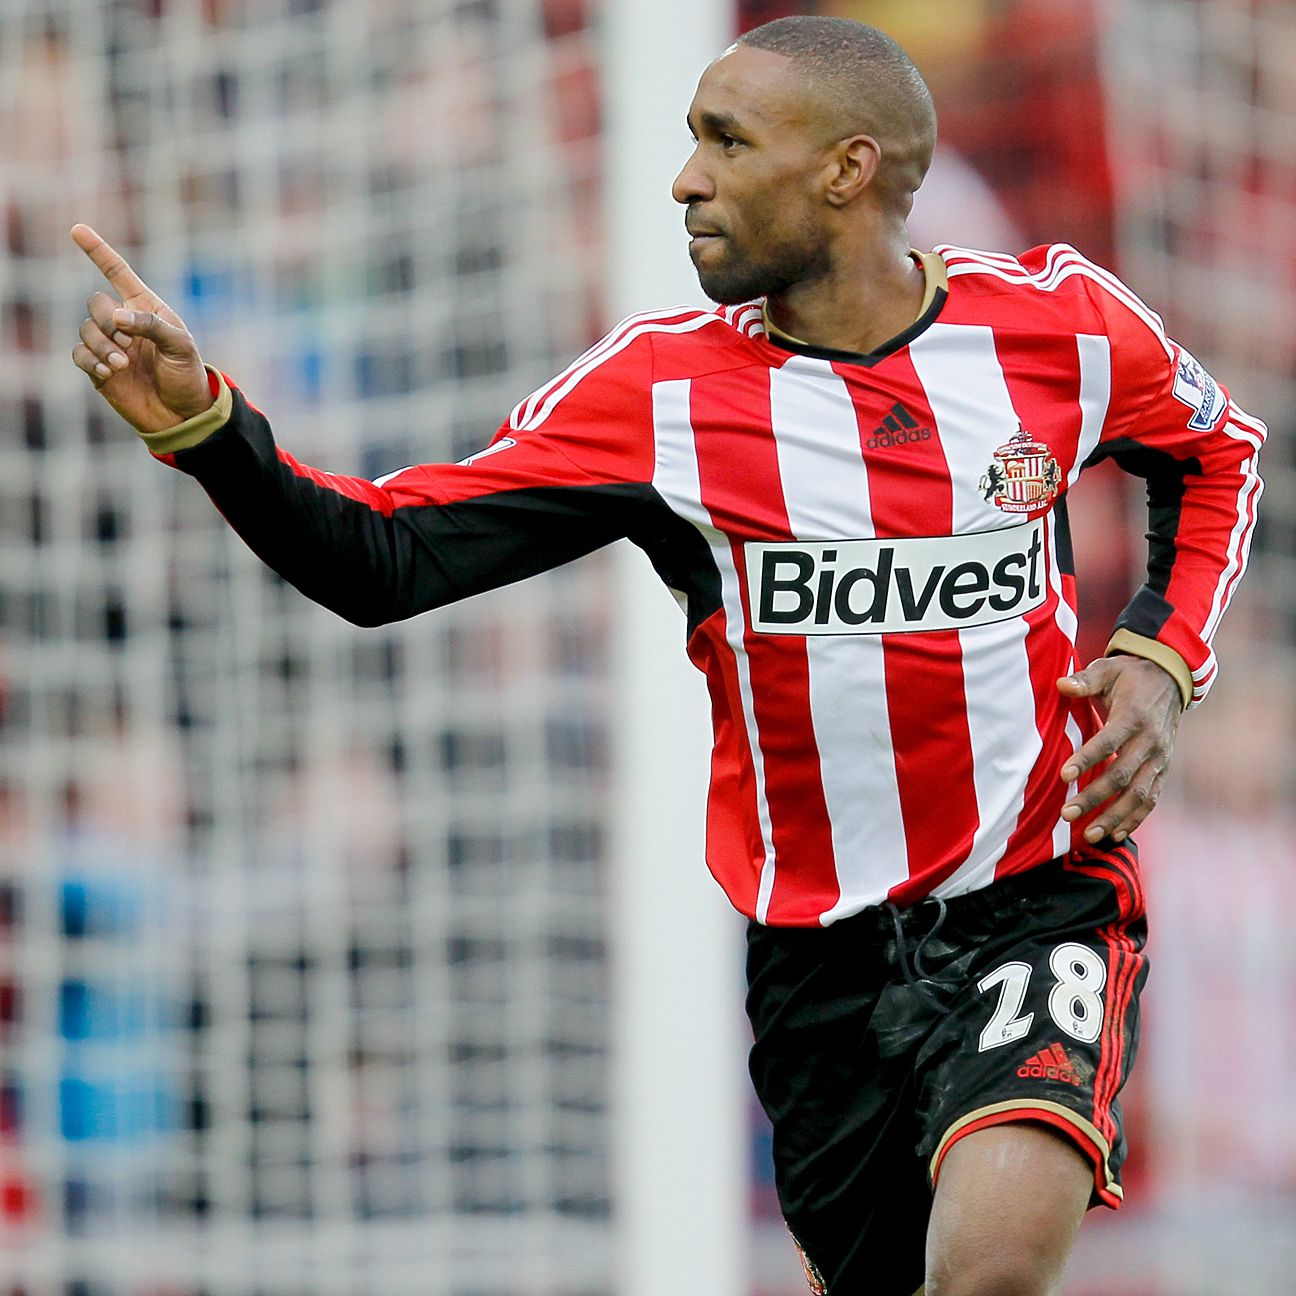 A proven Premier League striker like Sunderland's Jermain Defoe would tick all the boxes for Southampton.